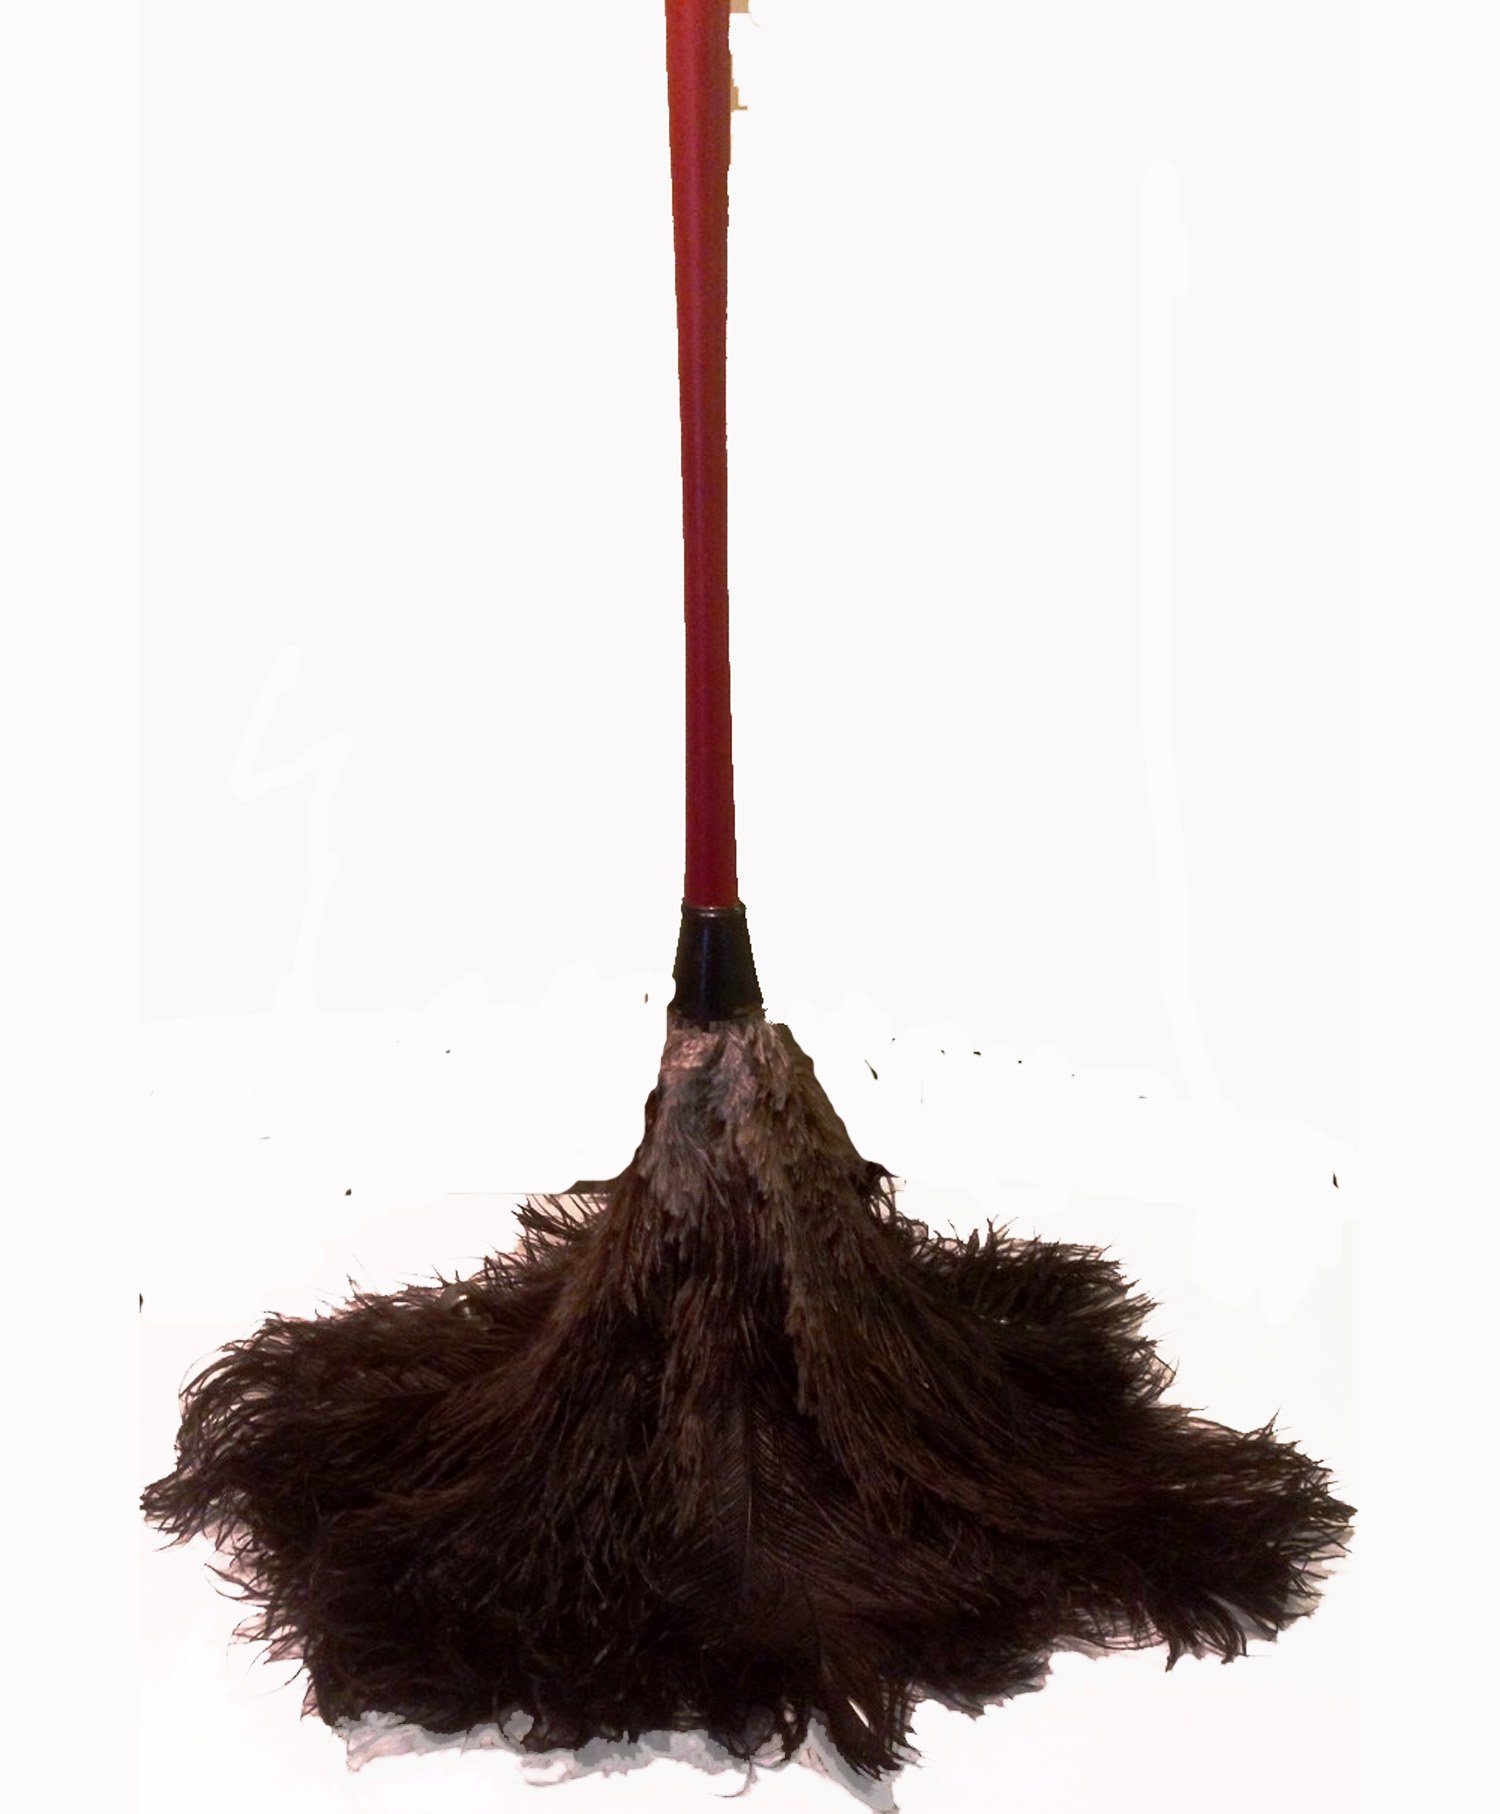 AAYU Brand Premium Professional Feather Duster, Natural Duster for Feather Moping and Cleaning, Eco-Friendly Genuine Ostrich Feather Duster with Wooden Handle, Easy to Clean Dust